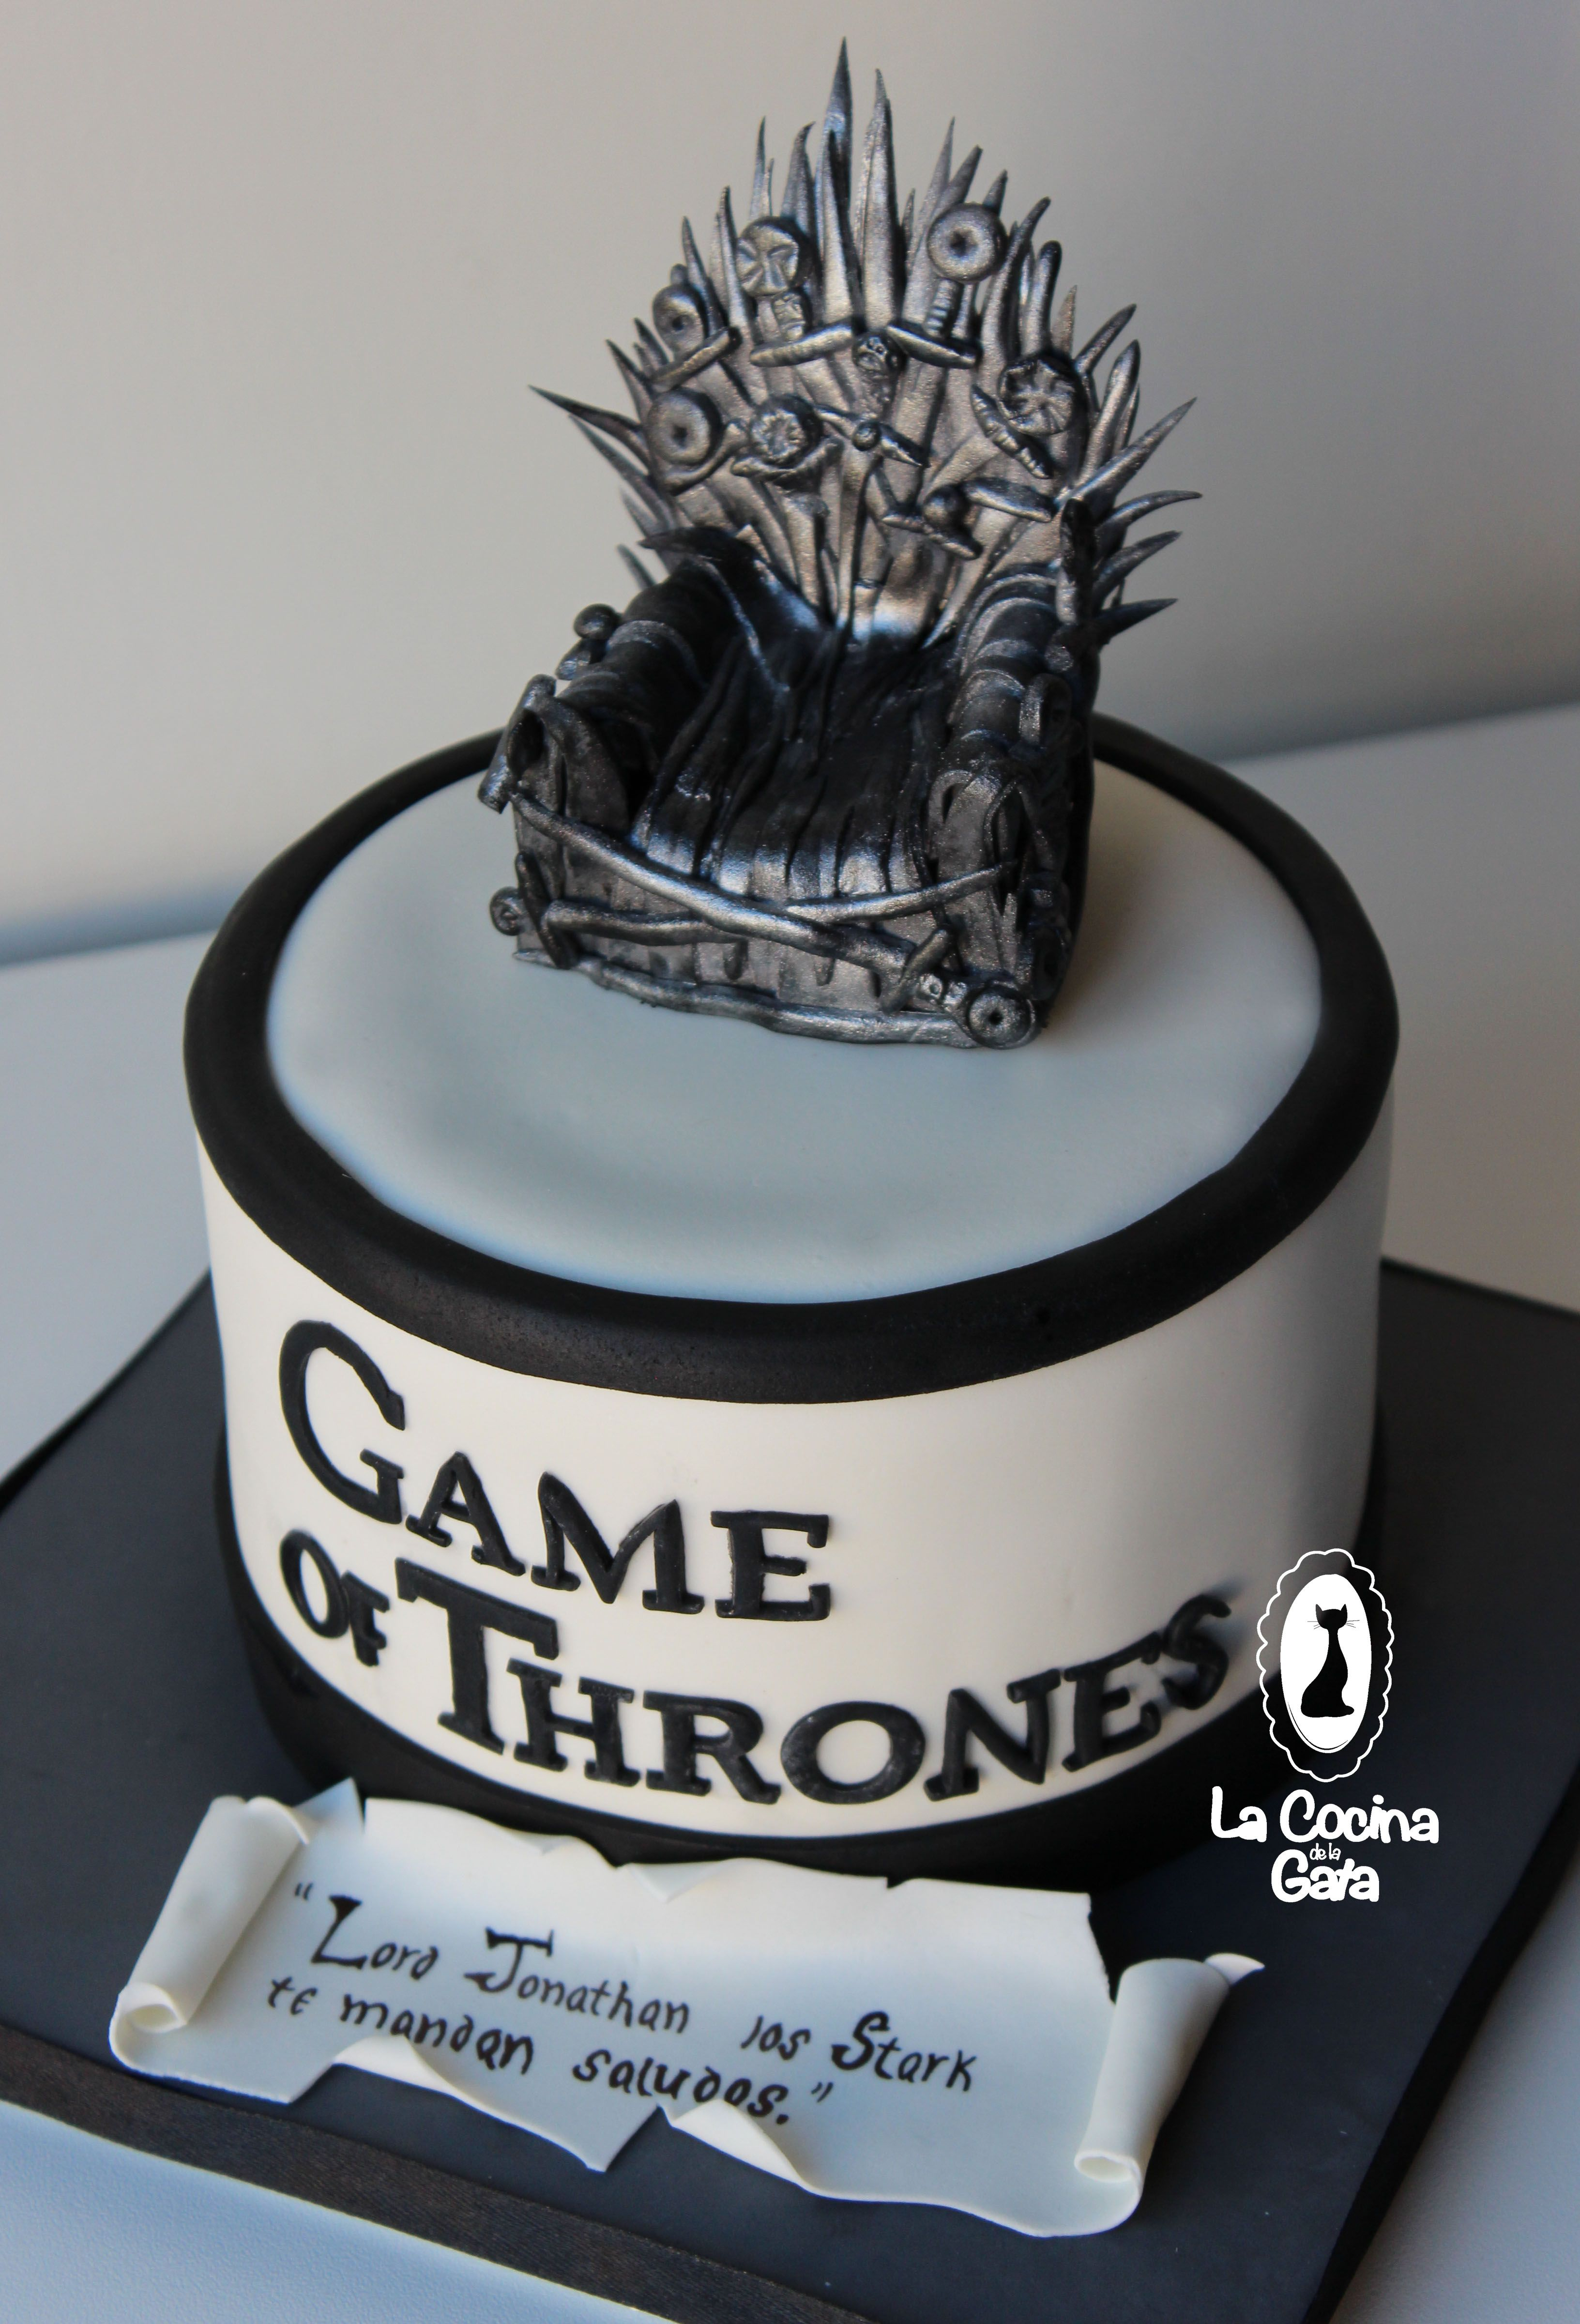 Game of thrones chair cake - Tarta Game Of Trones Bizcocho De Chocolate Relleno De Swissmeringue Buttercream De Oreo Game